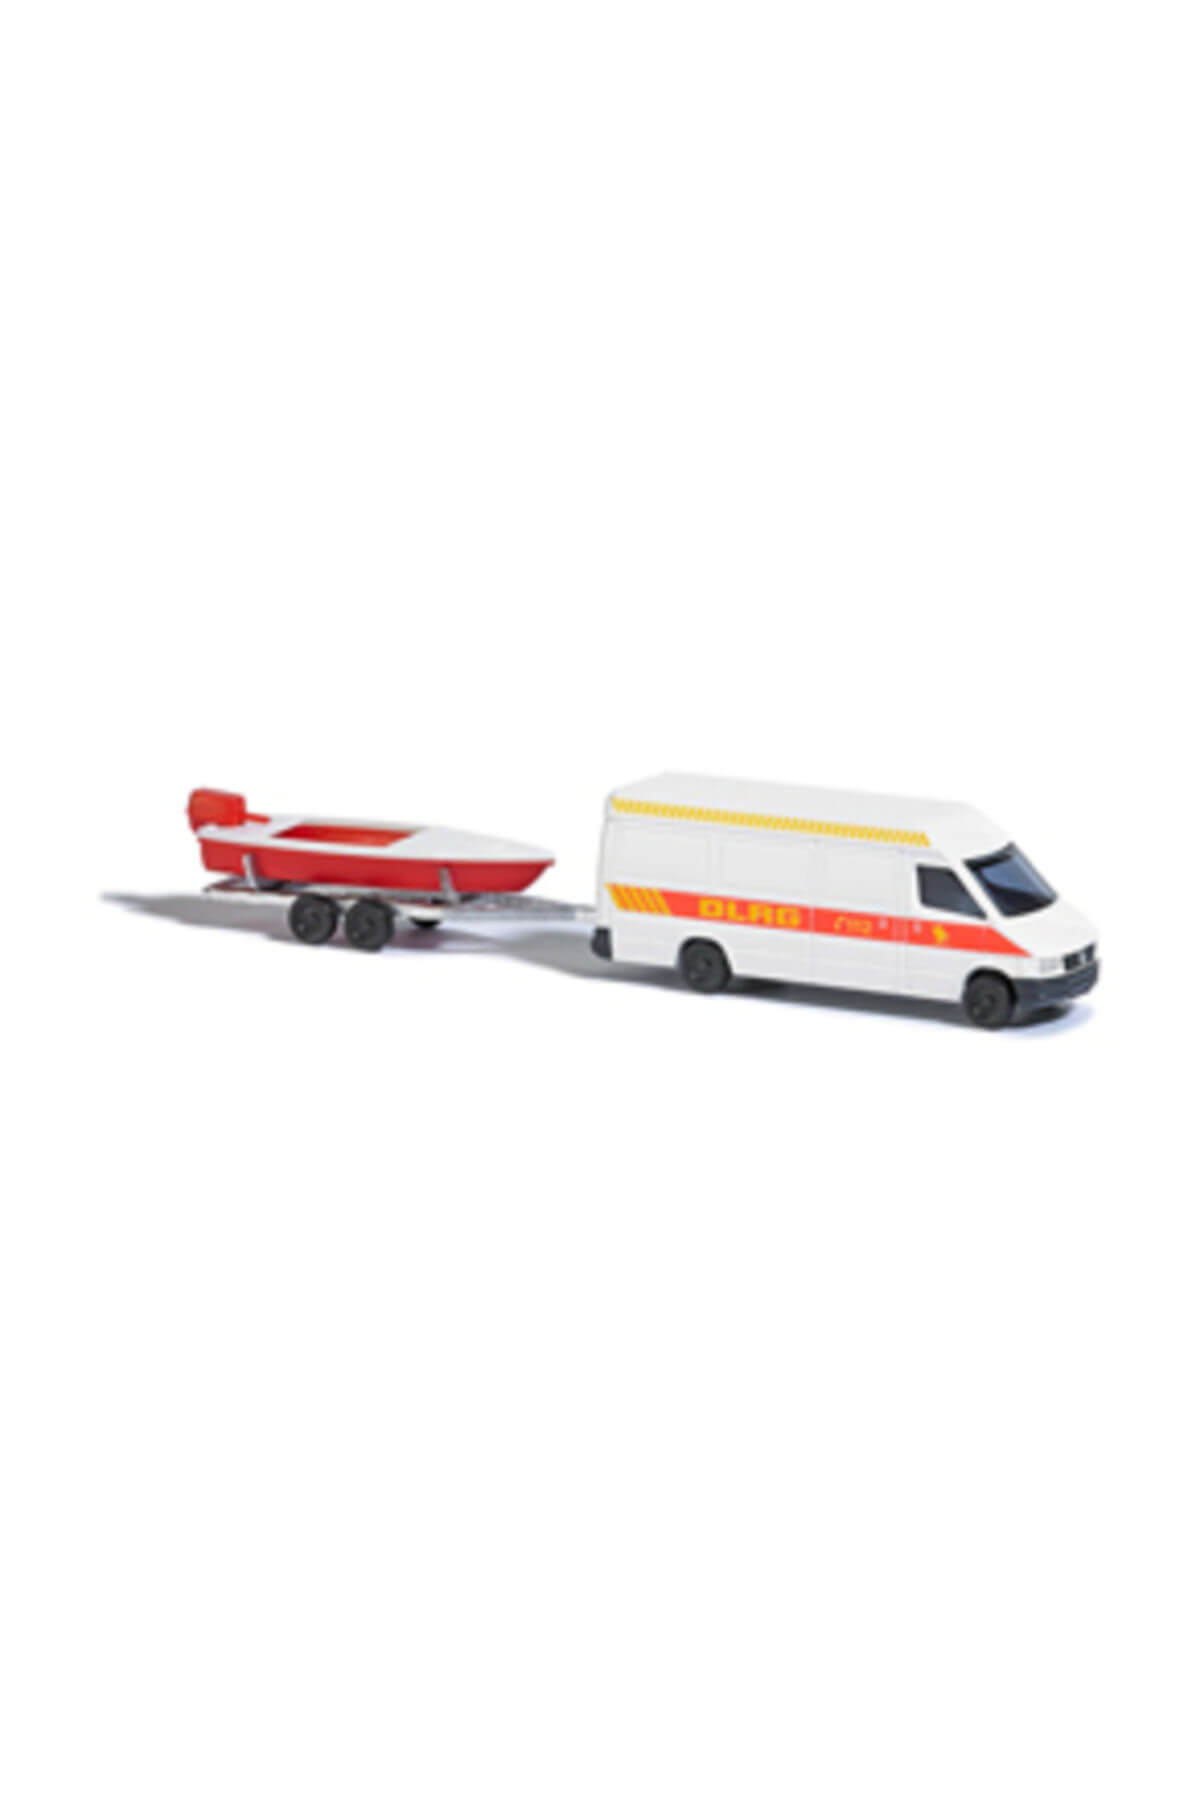 Busch Model Araba Mercedes Sprinter ve Bot 1 – 160